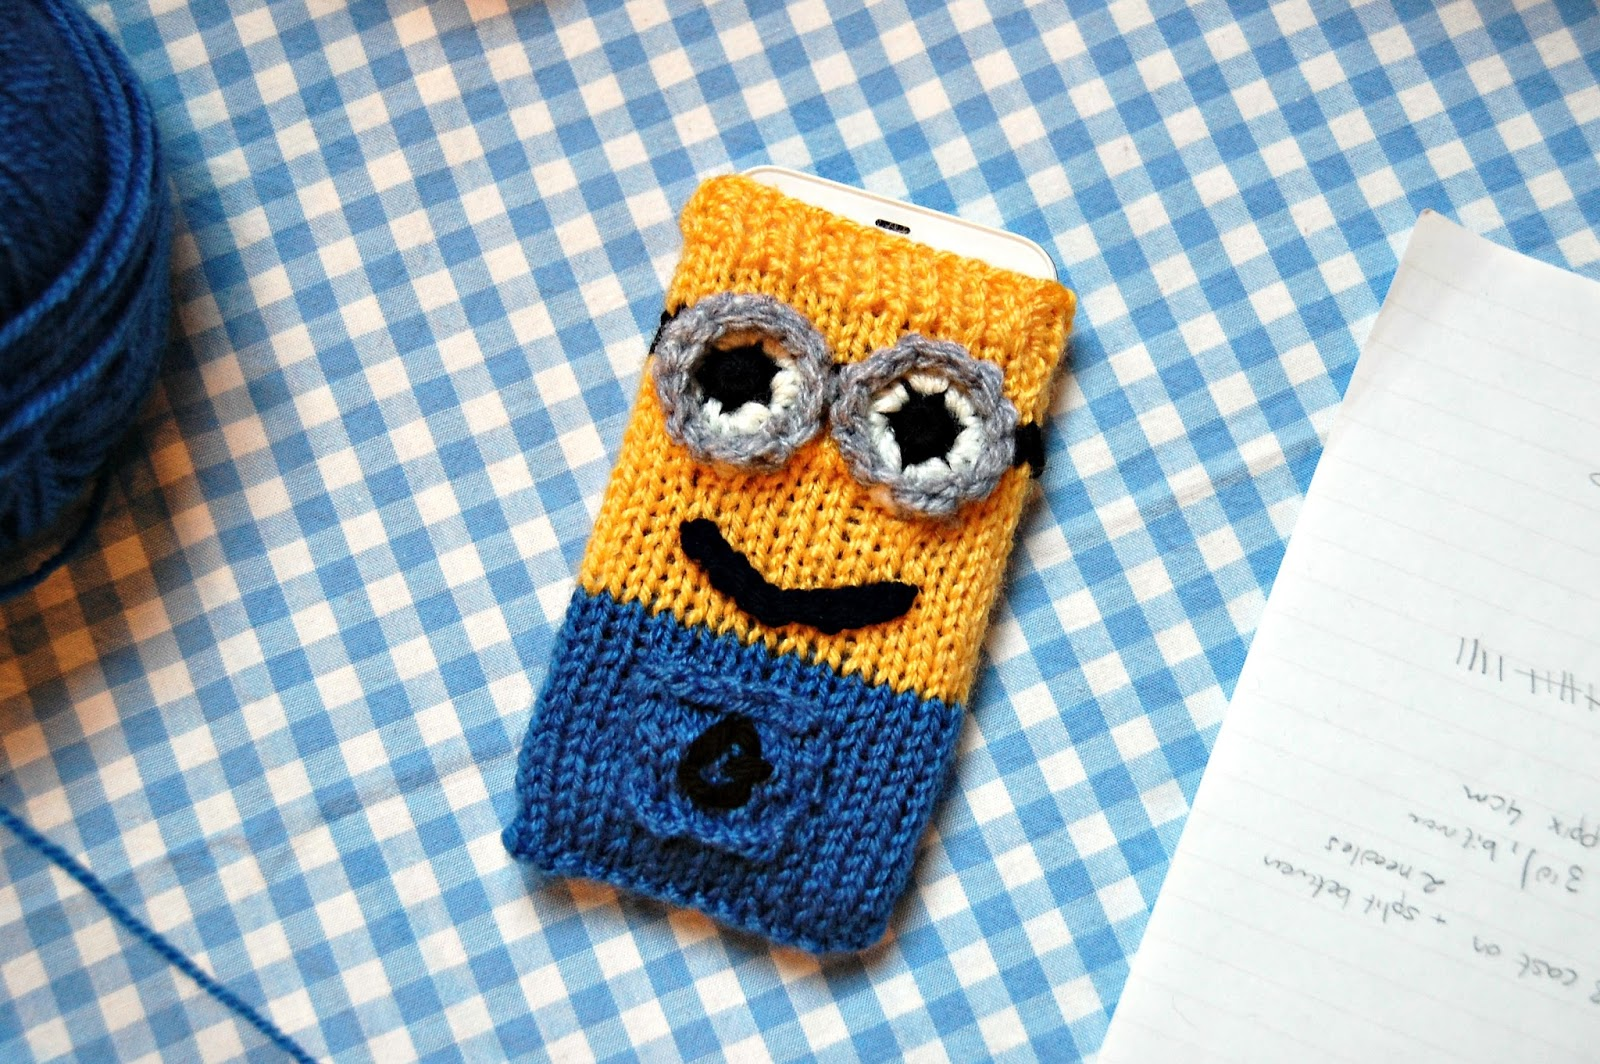 Small Heart Knitting Pattern : the geeky knitter: minion phone cover - free knitting pattern